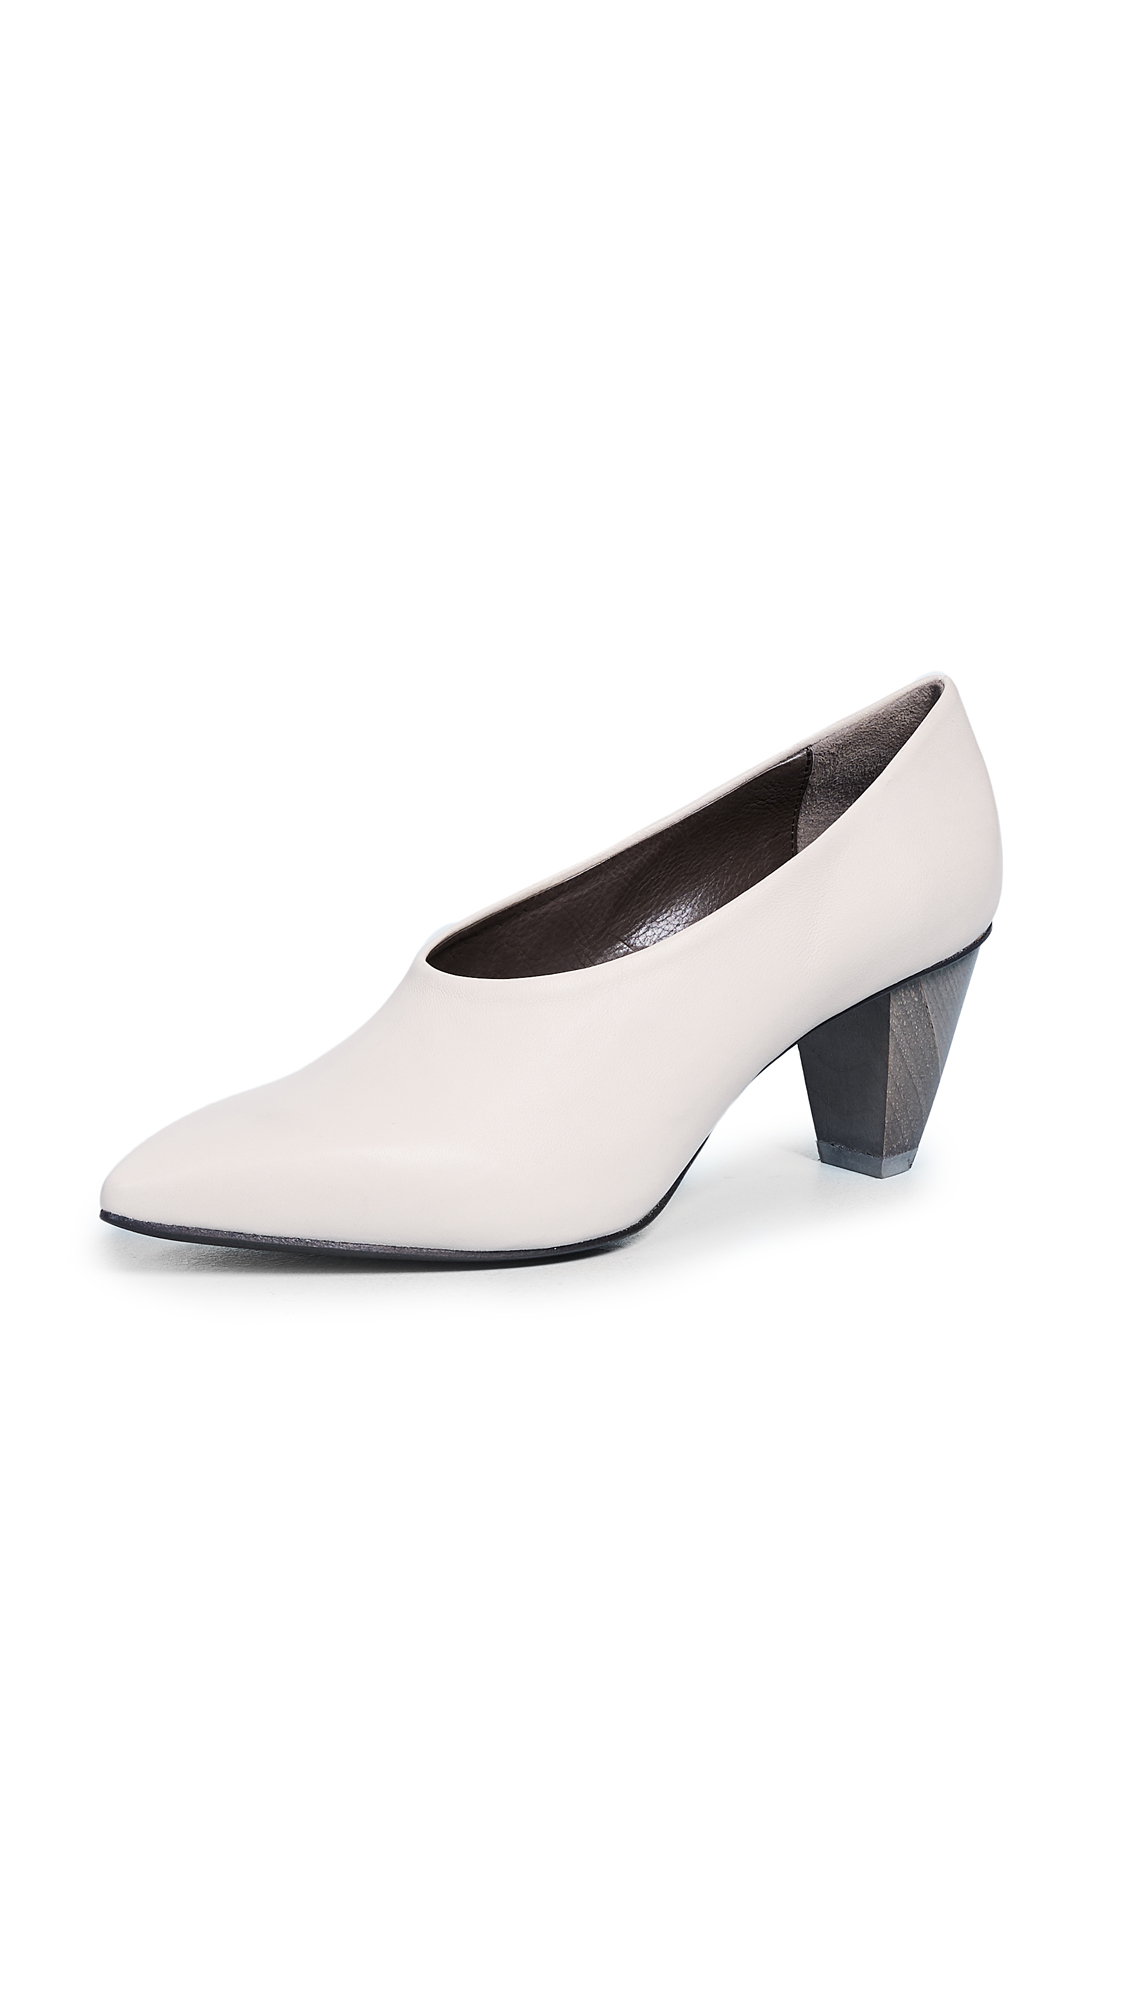 Coclico Shoes Jackii Point Toe Pumps - Nature Ace